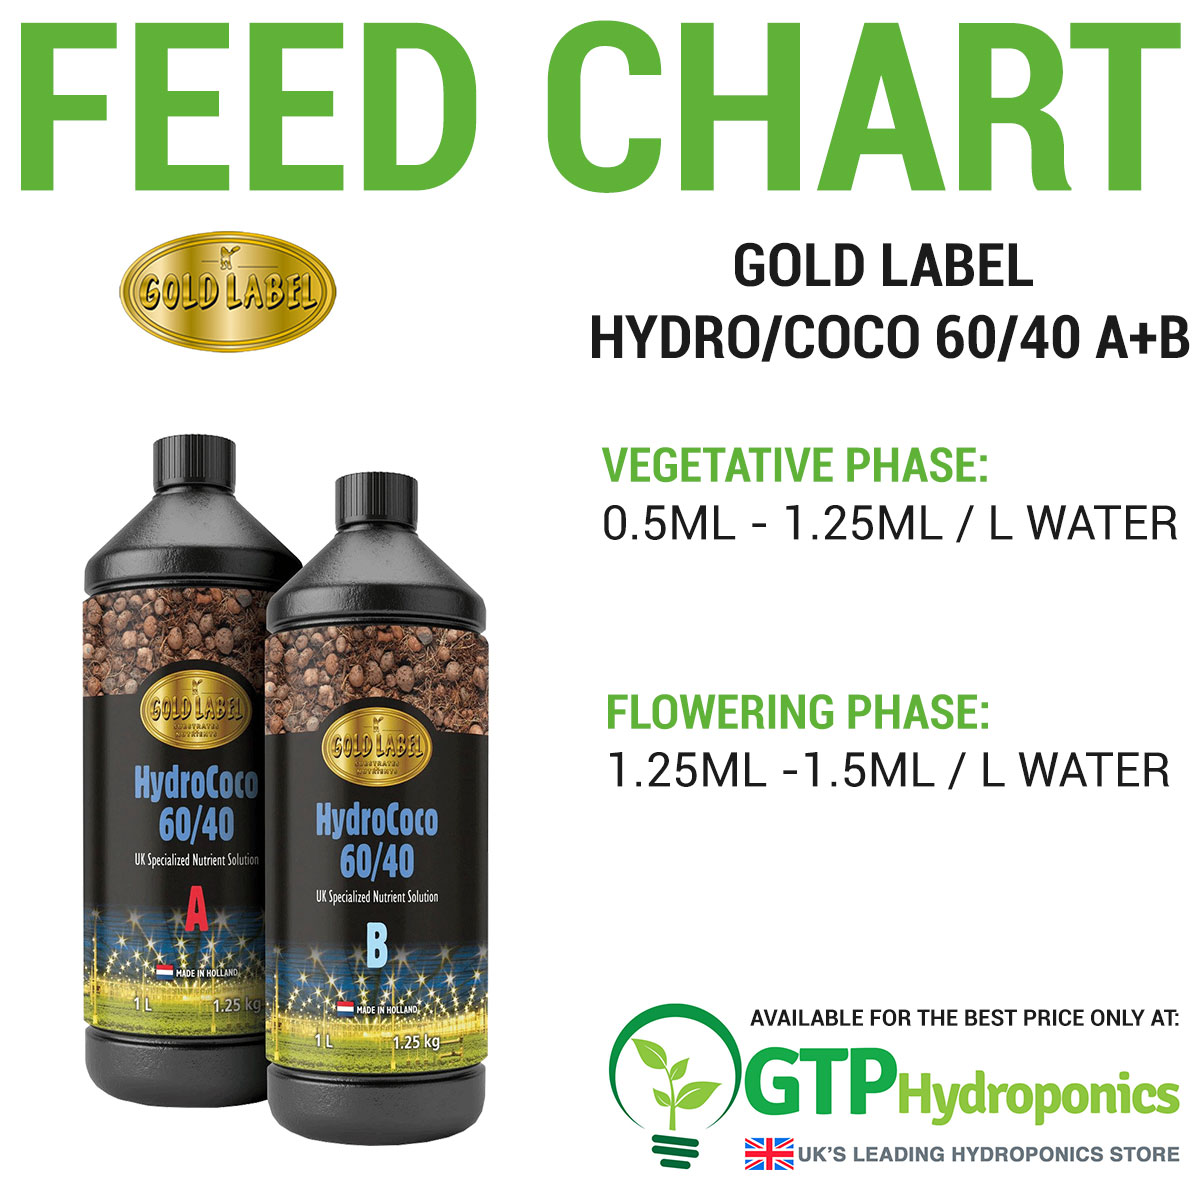 Gold Label Hydro/Coco 60/40 A+B overview